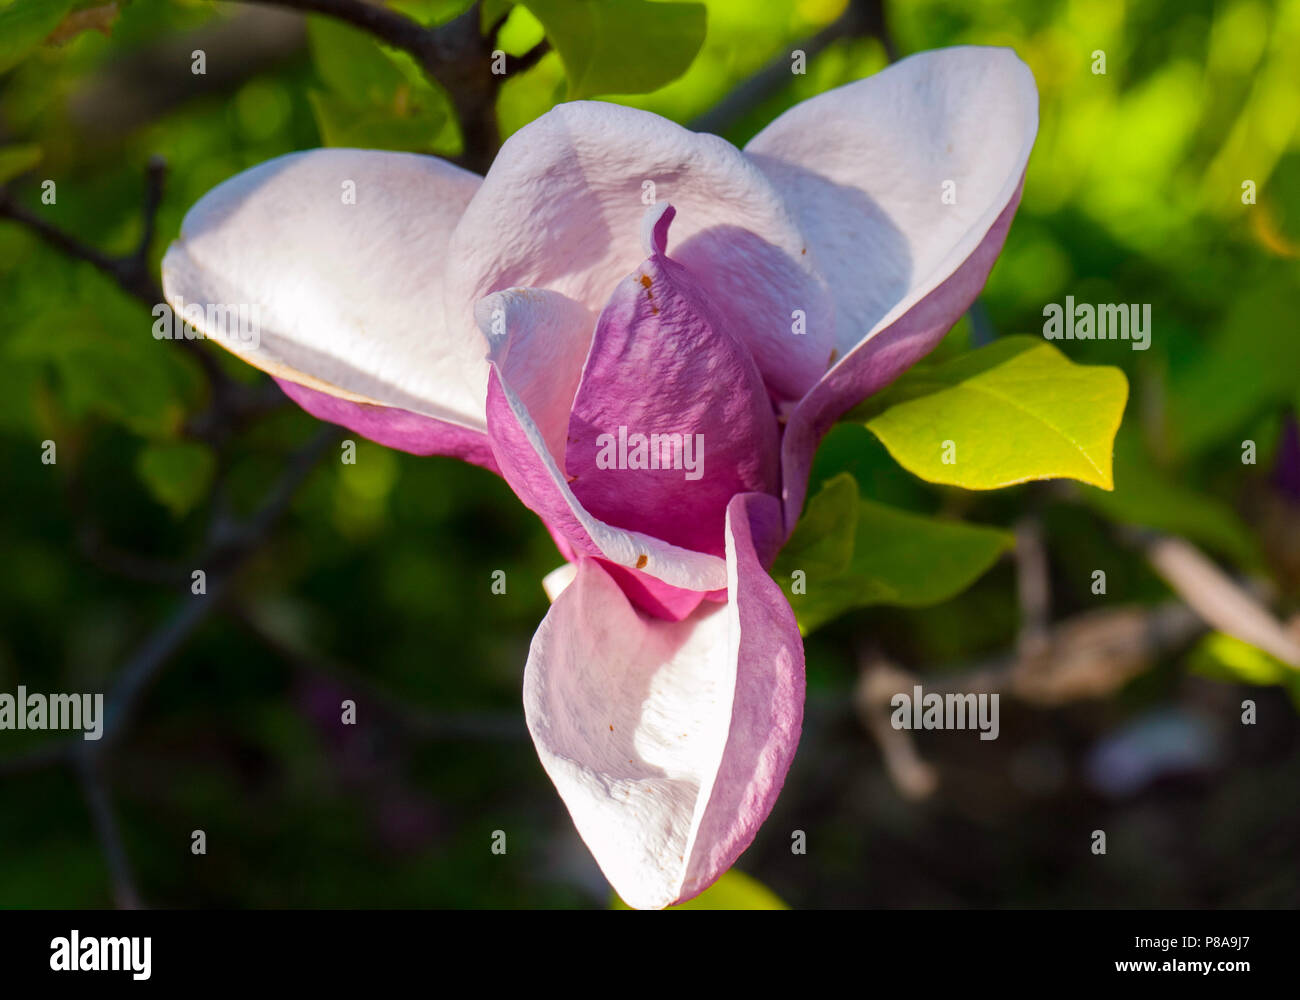 A Beautiful Lush Flower With Huge Pink Petals Shot Close Up For